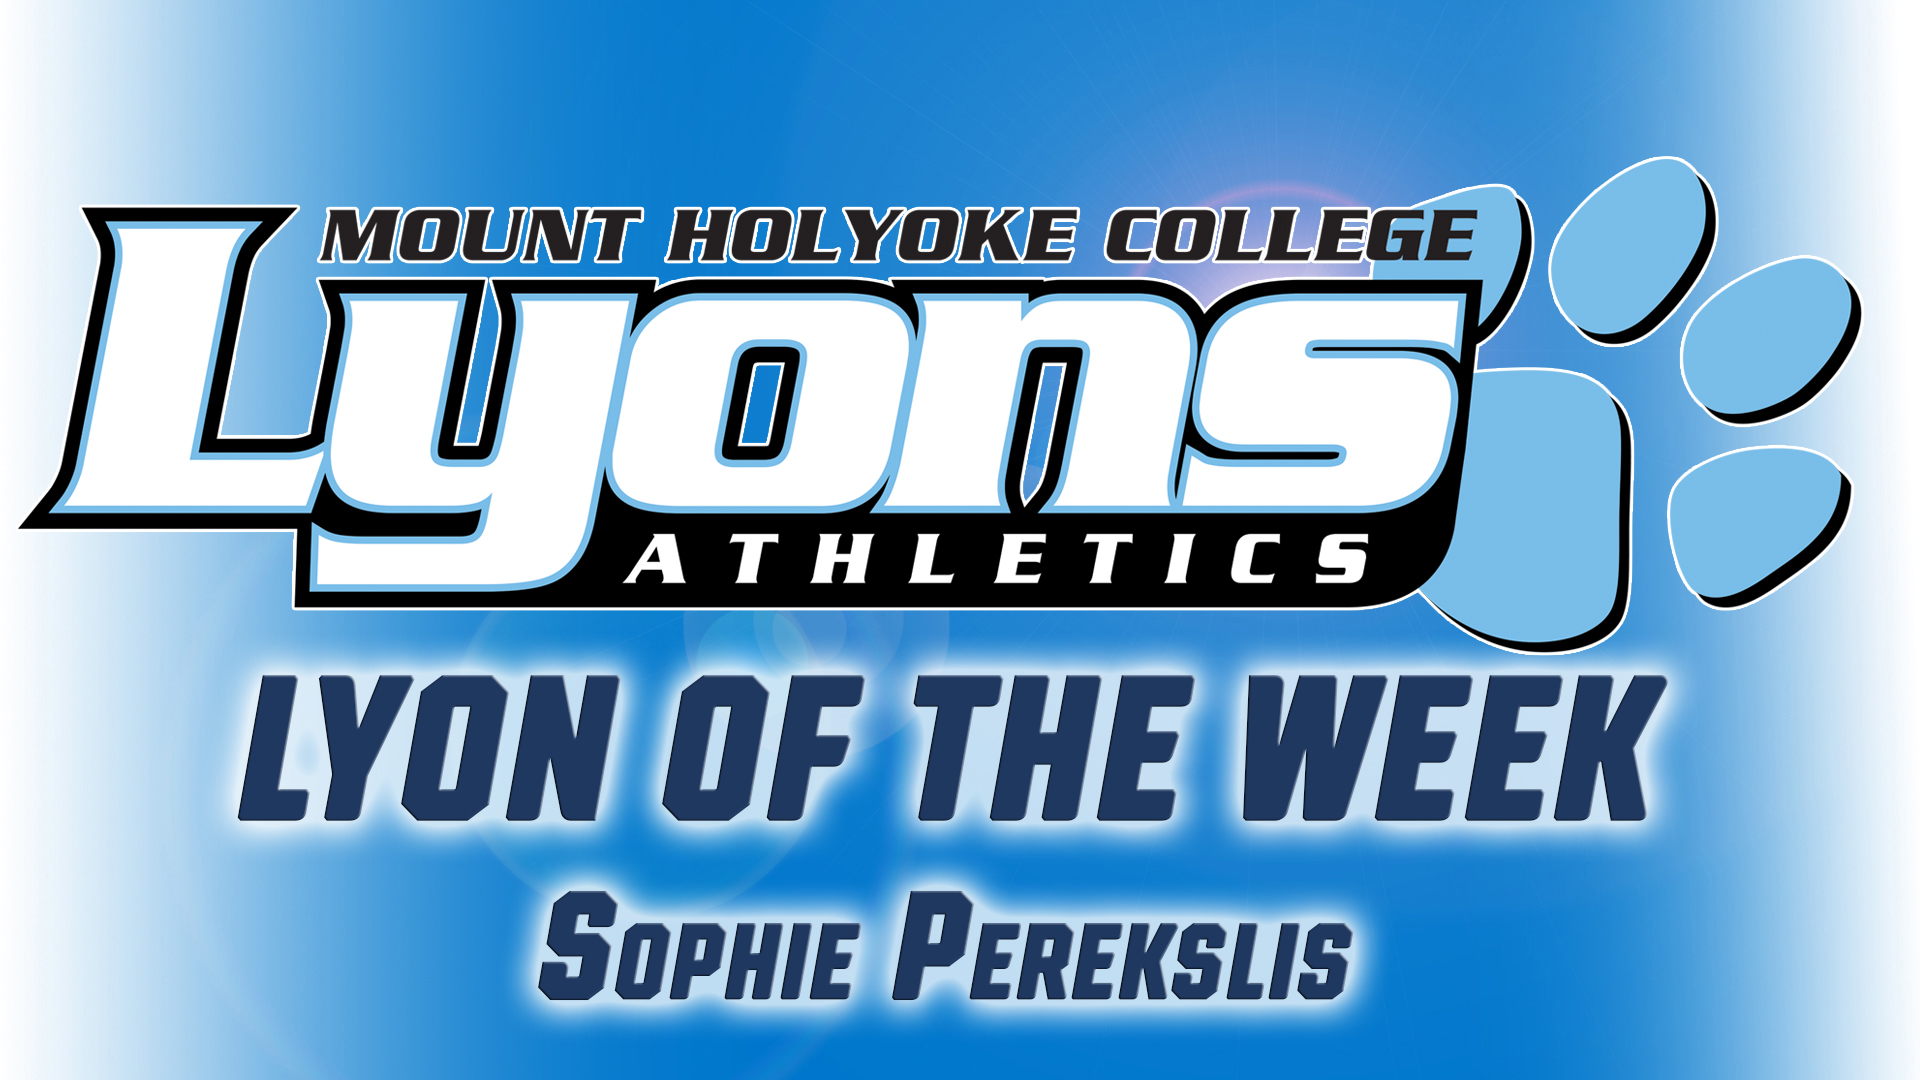 Perekslis Garners Lyon of the Week Honors